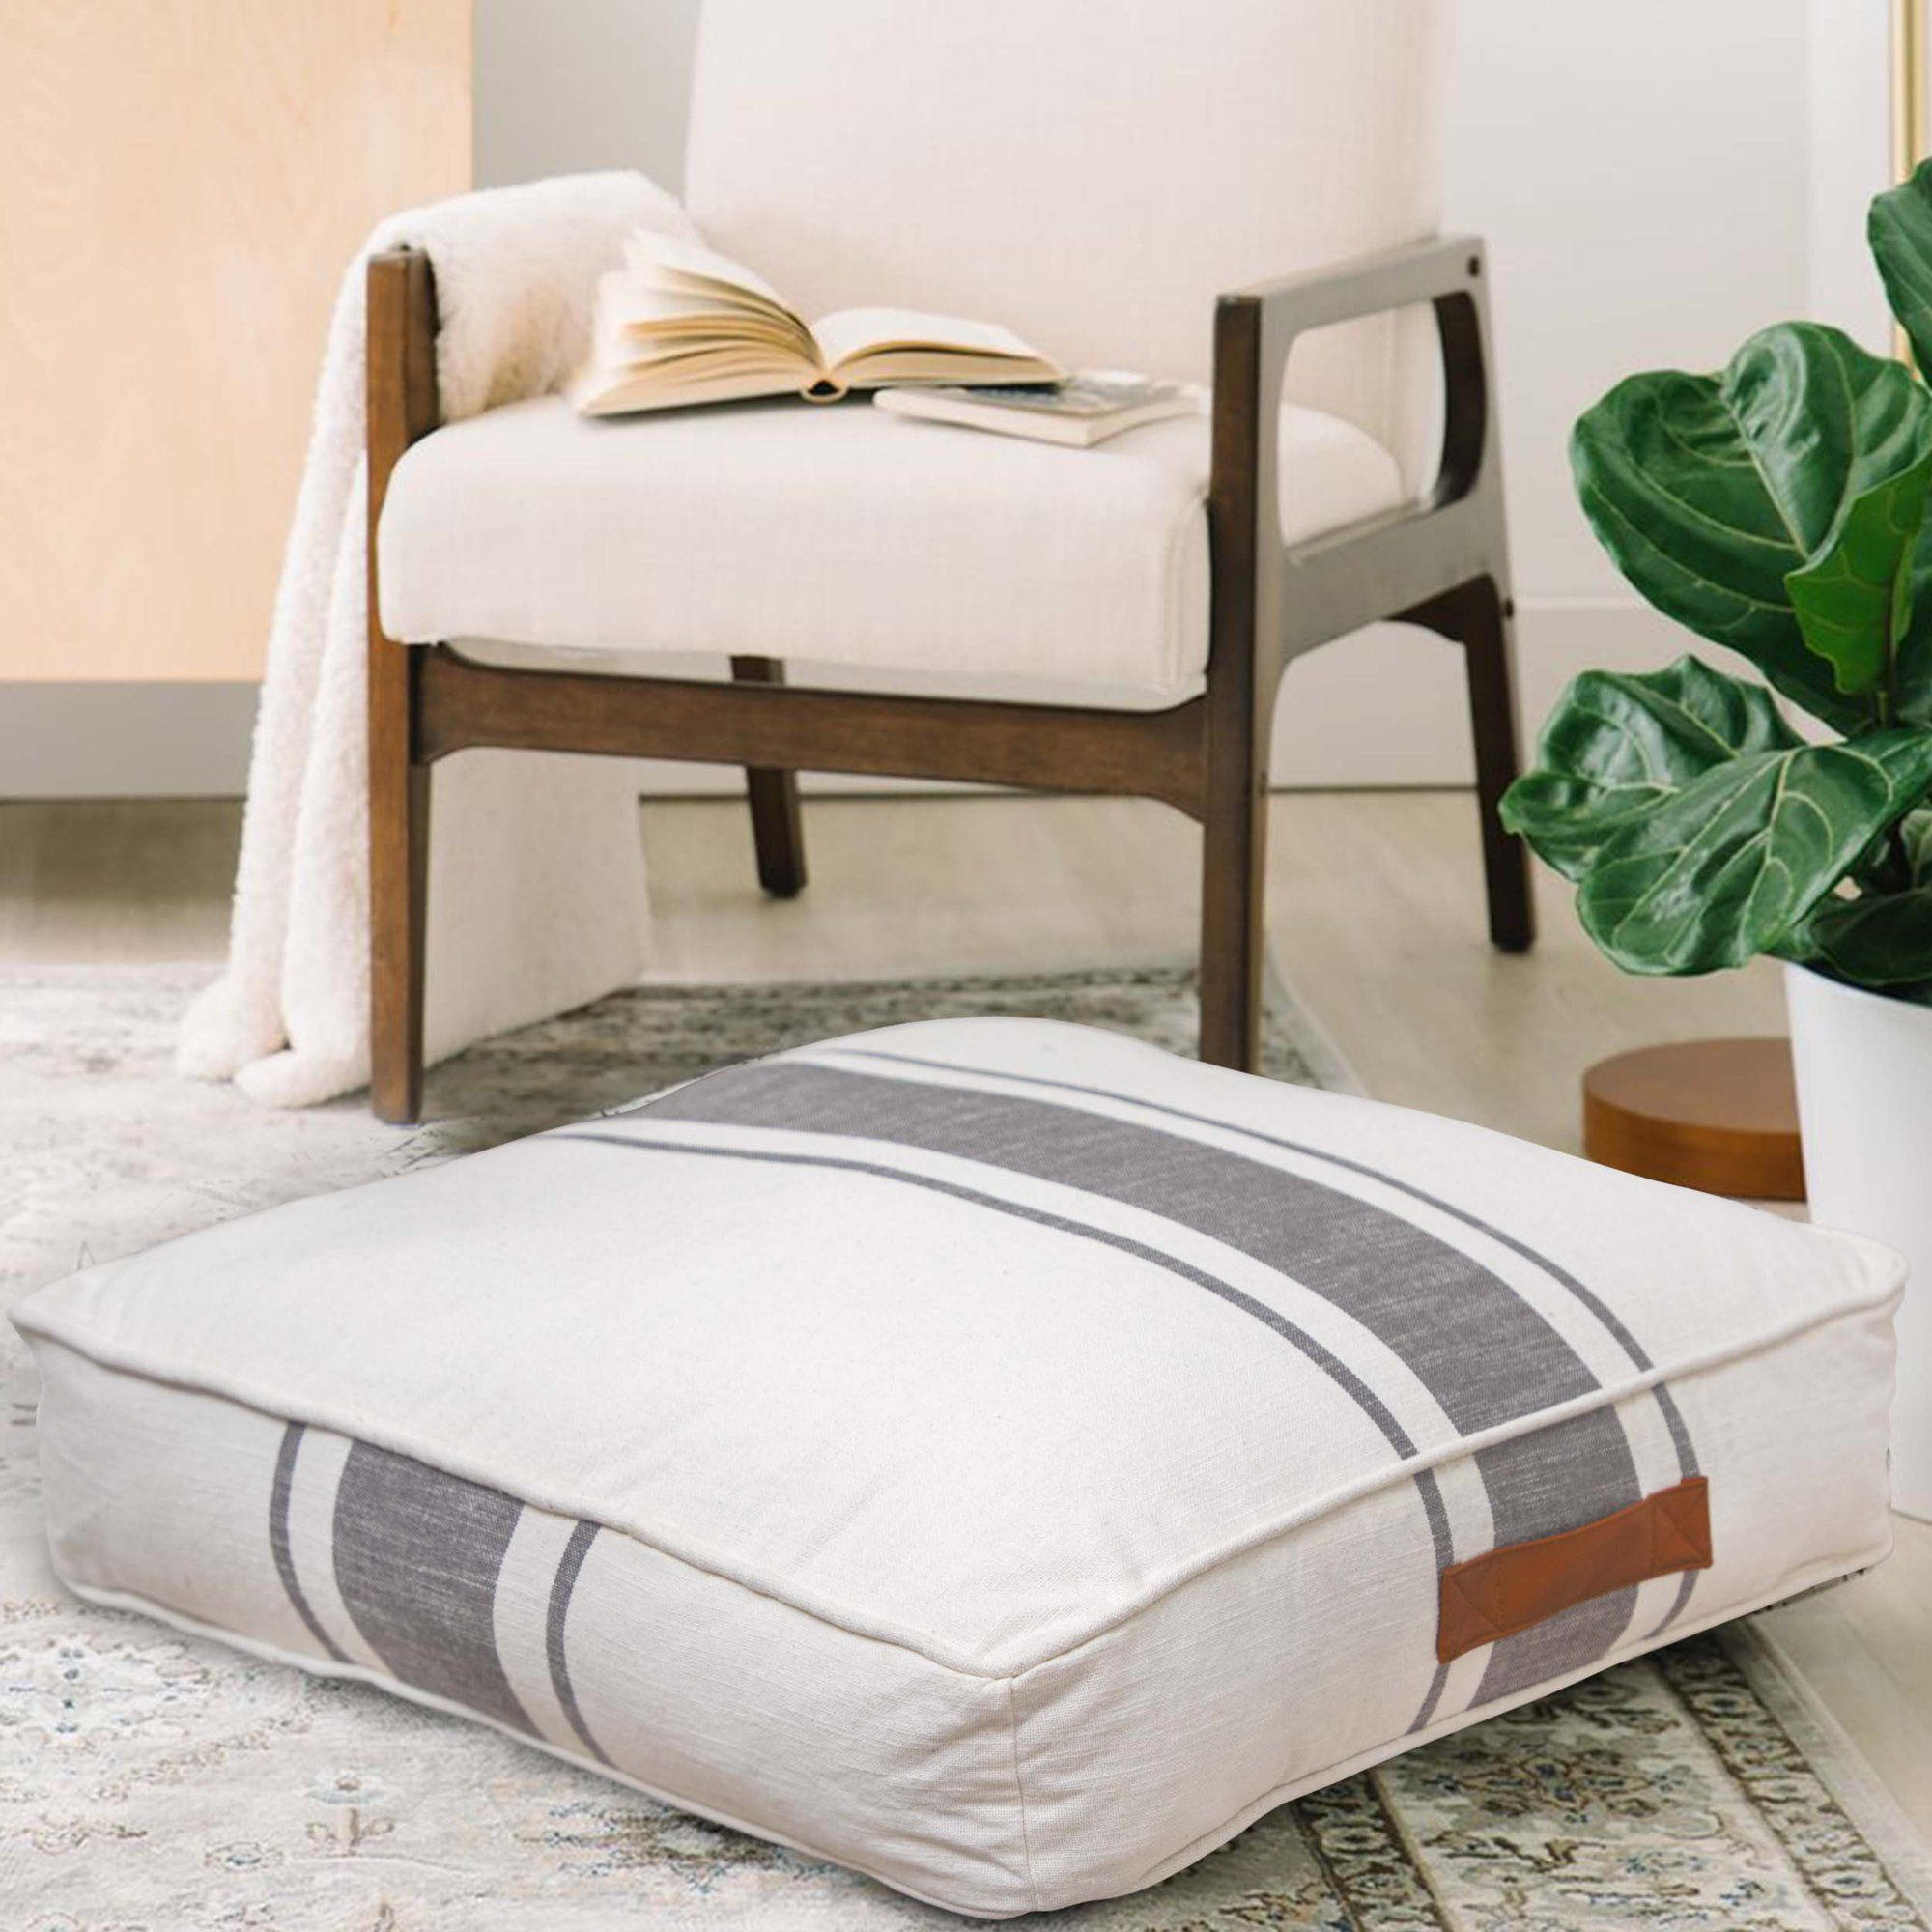 Better Homes Gardens Yarn Dyed Floor Pillow White And Gray Center Stripes 24 X 24 Walmart Com In 2021 Floor Pillows Square Floor Pillows Striped Floor Pillows [ 2000 x 2000 Pixel ]